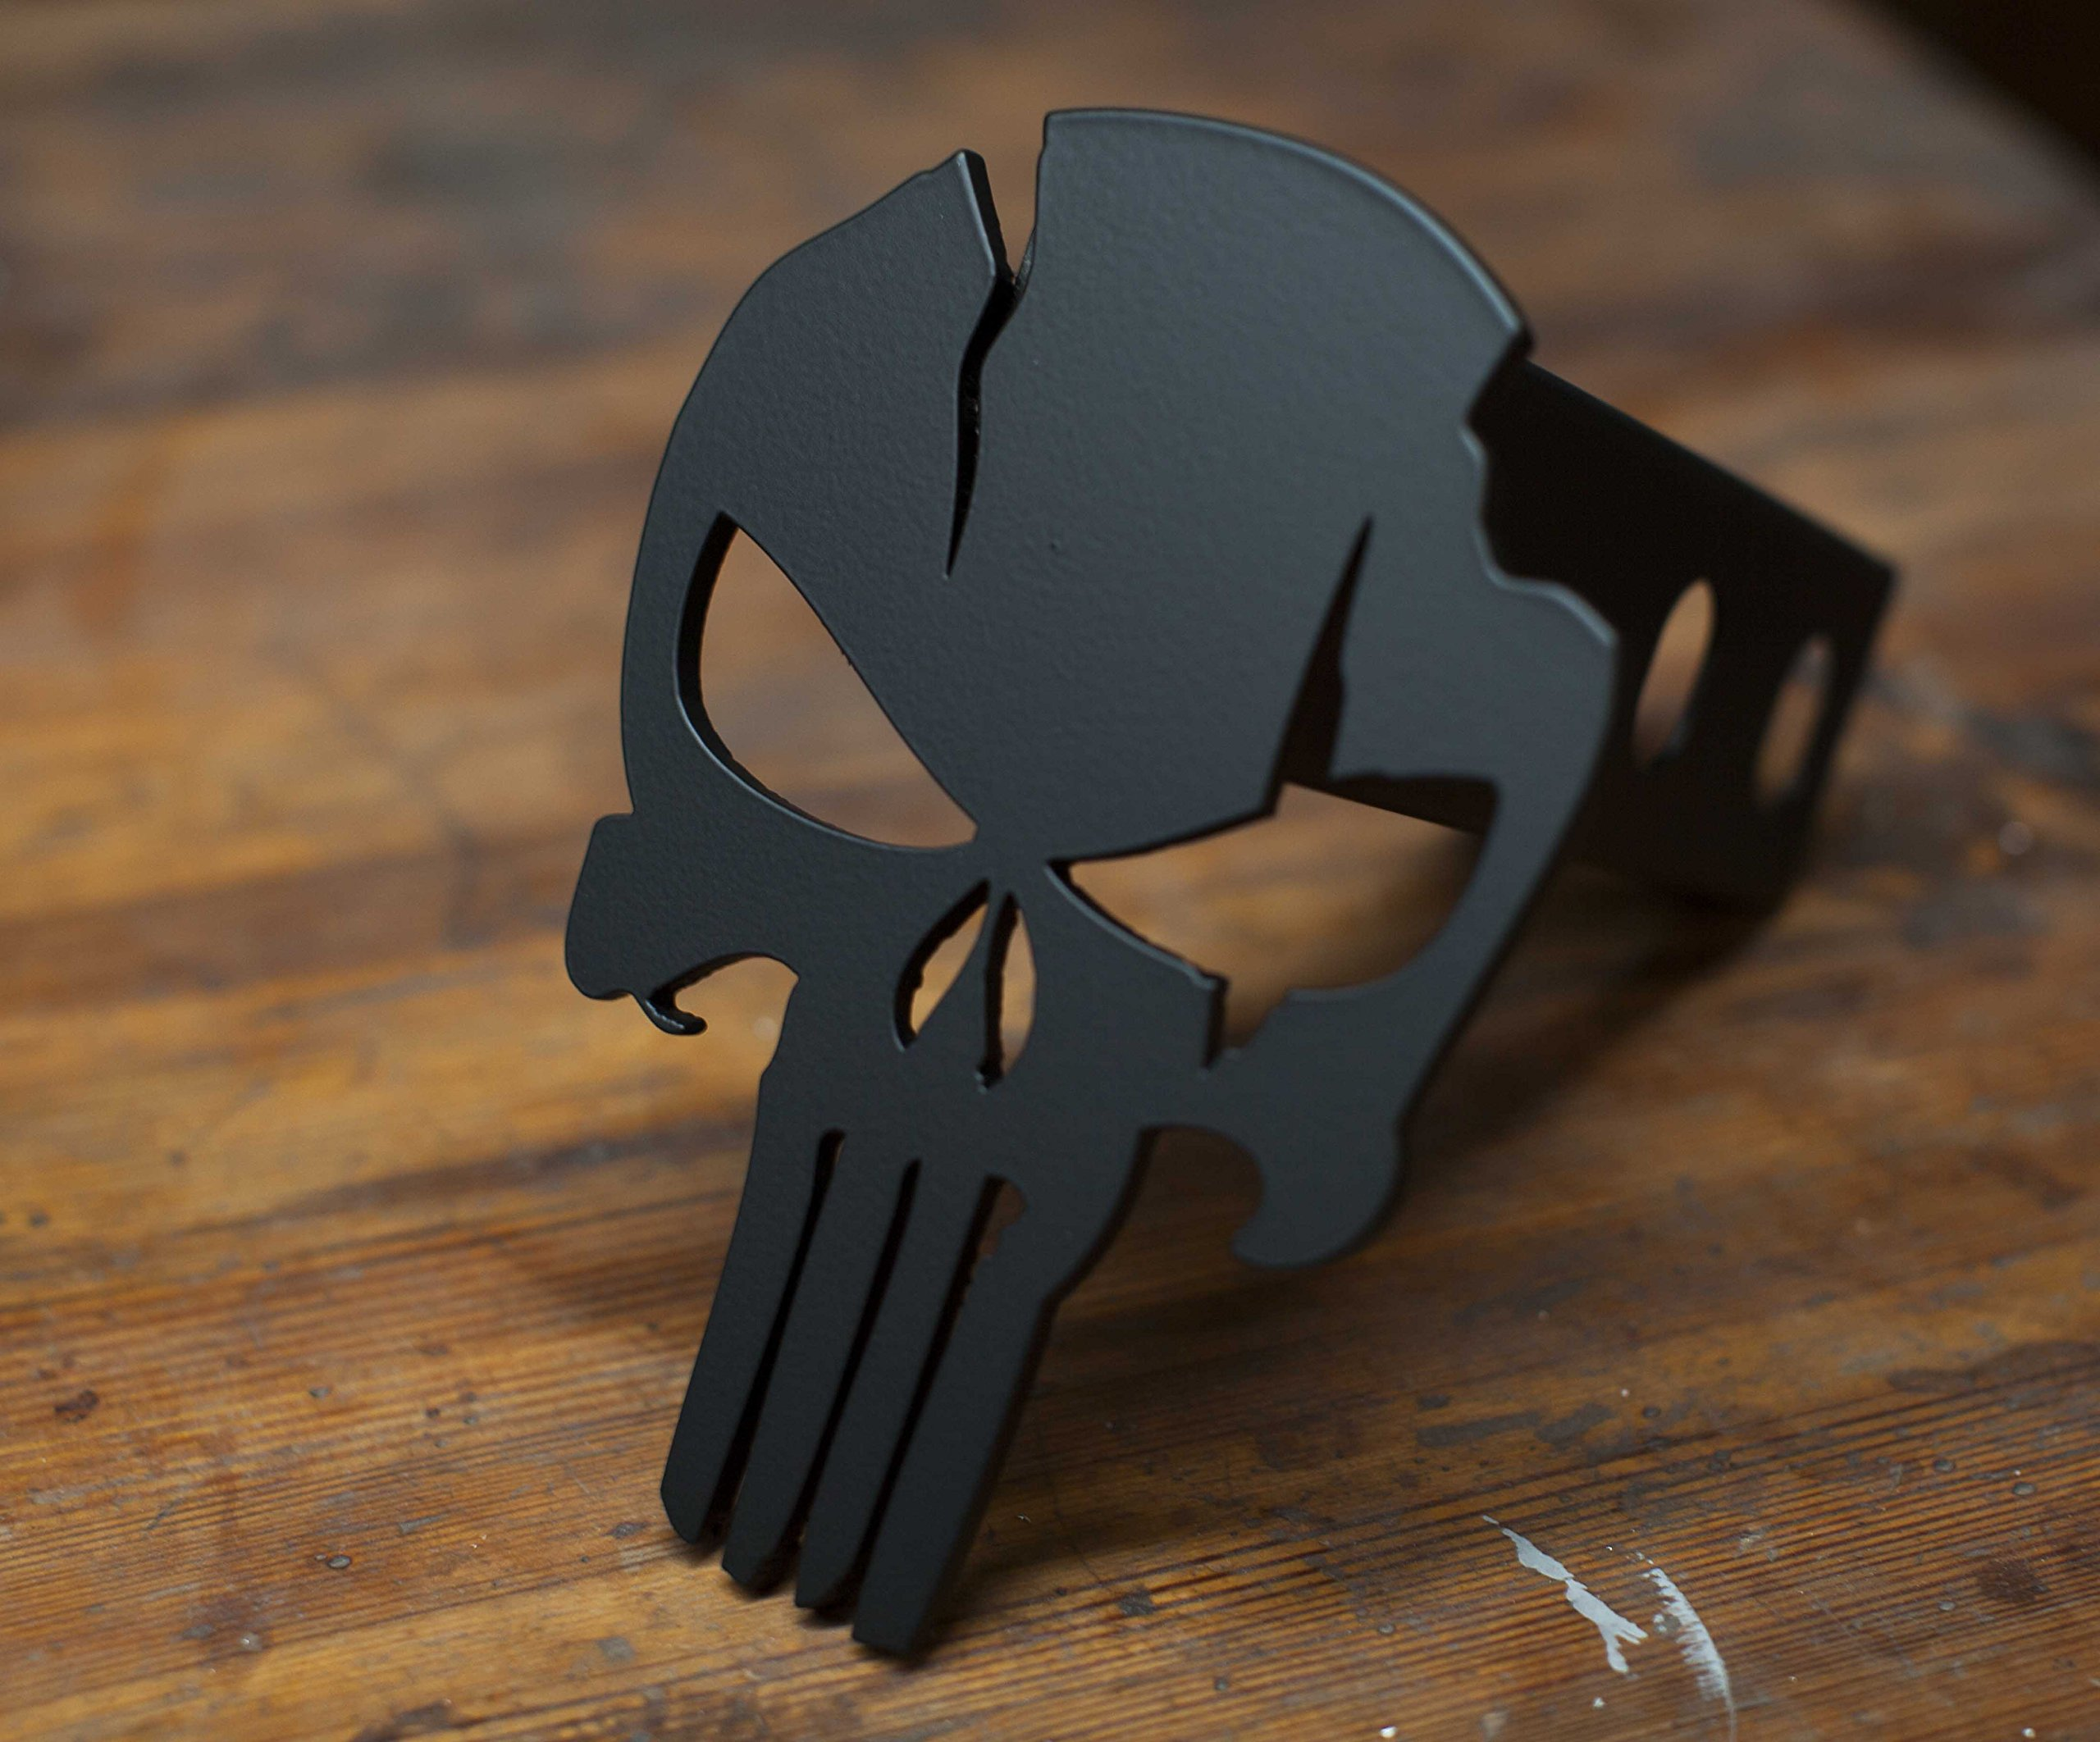 Punisher Warrior - Trailer Hitch Cover by Kempter Kustoms